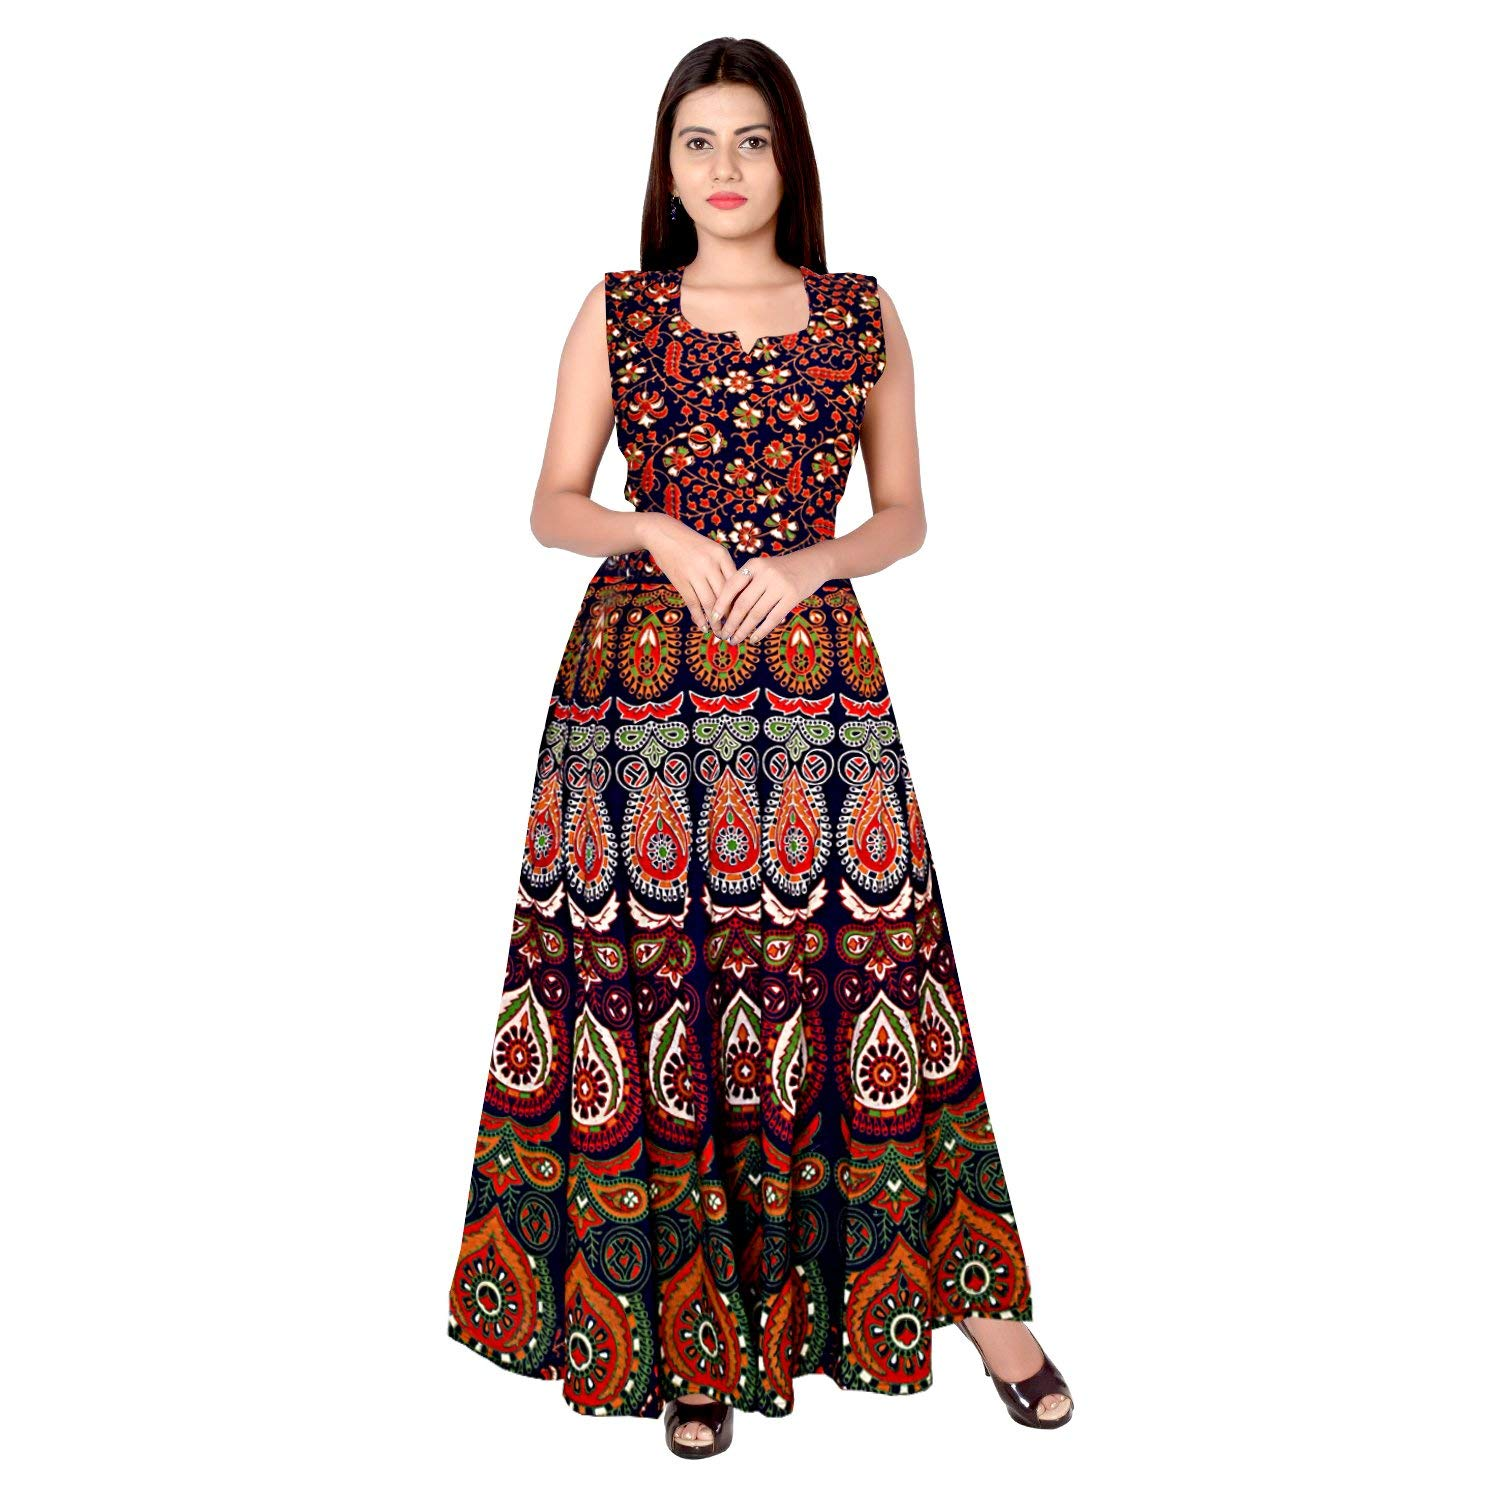 WHOLESALE LOT OF 5 PCS INDIAN WOMENS LONG DRESS ONE PIECE COTTON ... 11aad58bbb40